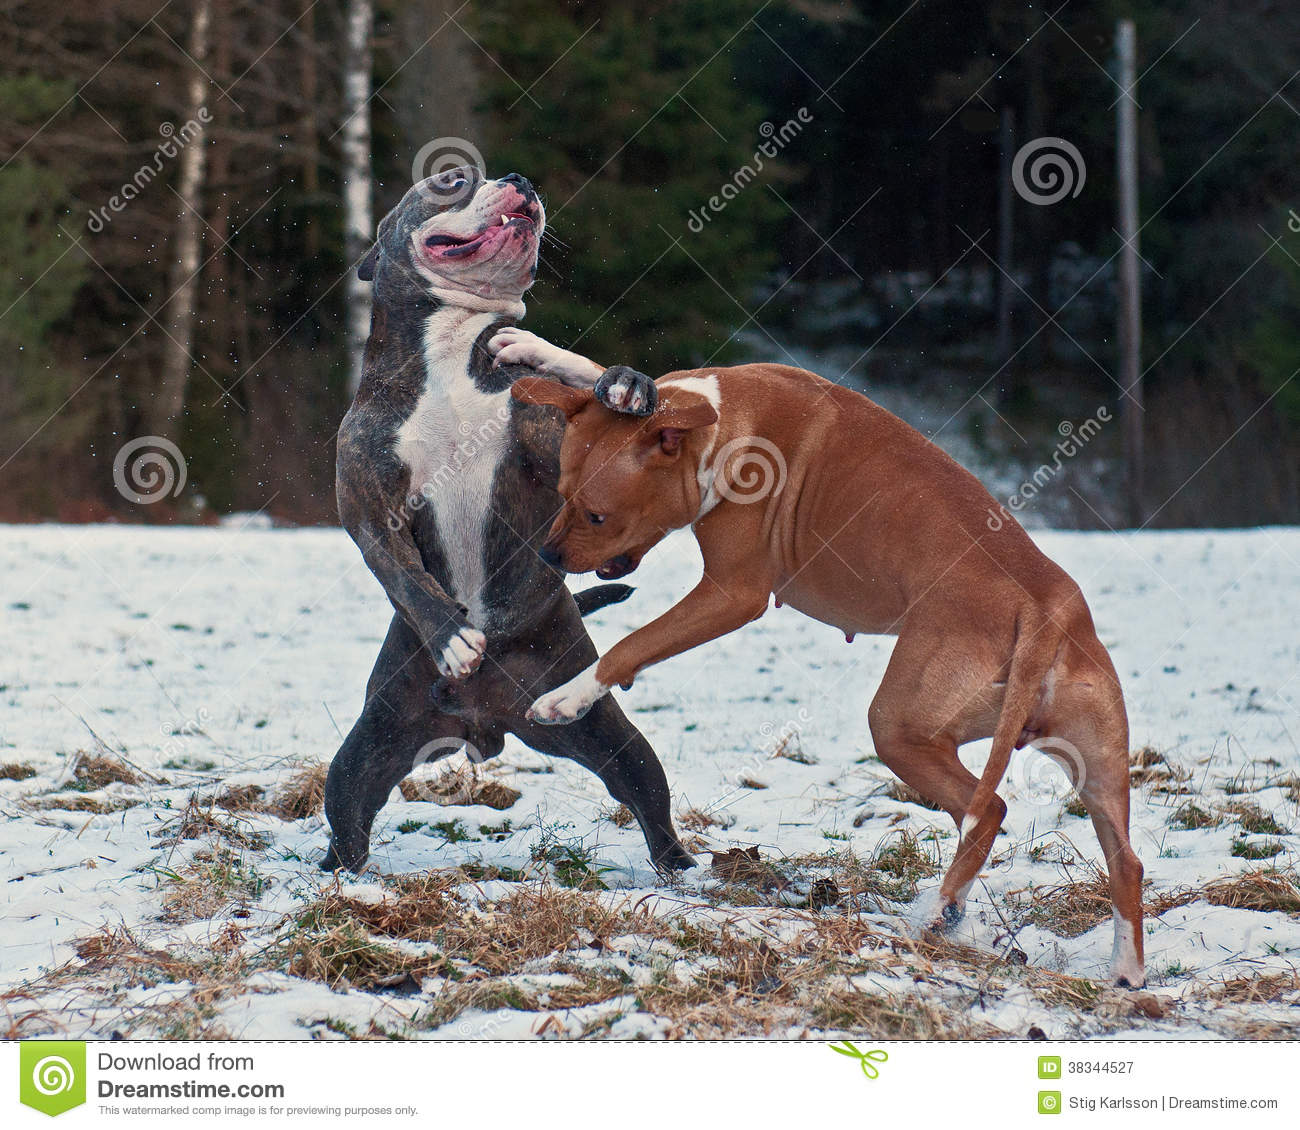 american pit bull terrier essay American pit bull terrier essay the world seems to believe that the american pit bull terrier is a vicious breed of dog, violent and ruthless by nature, and that.